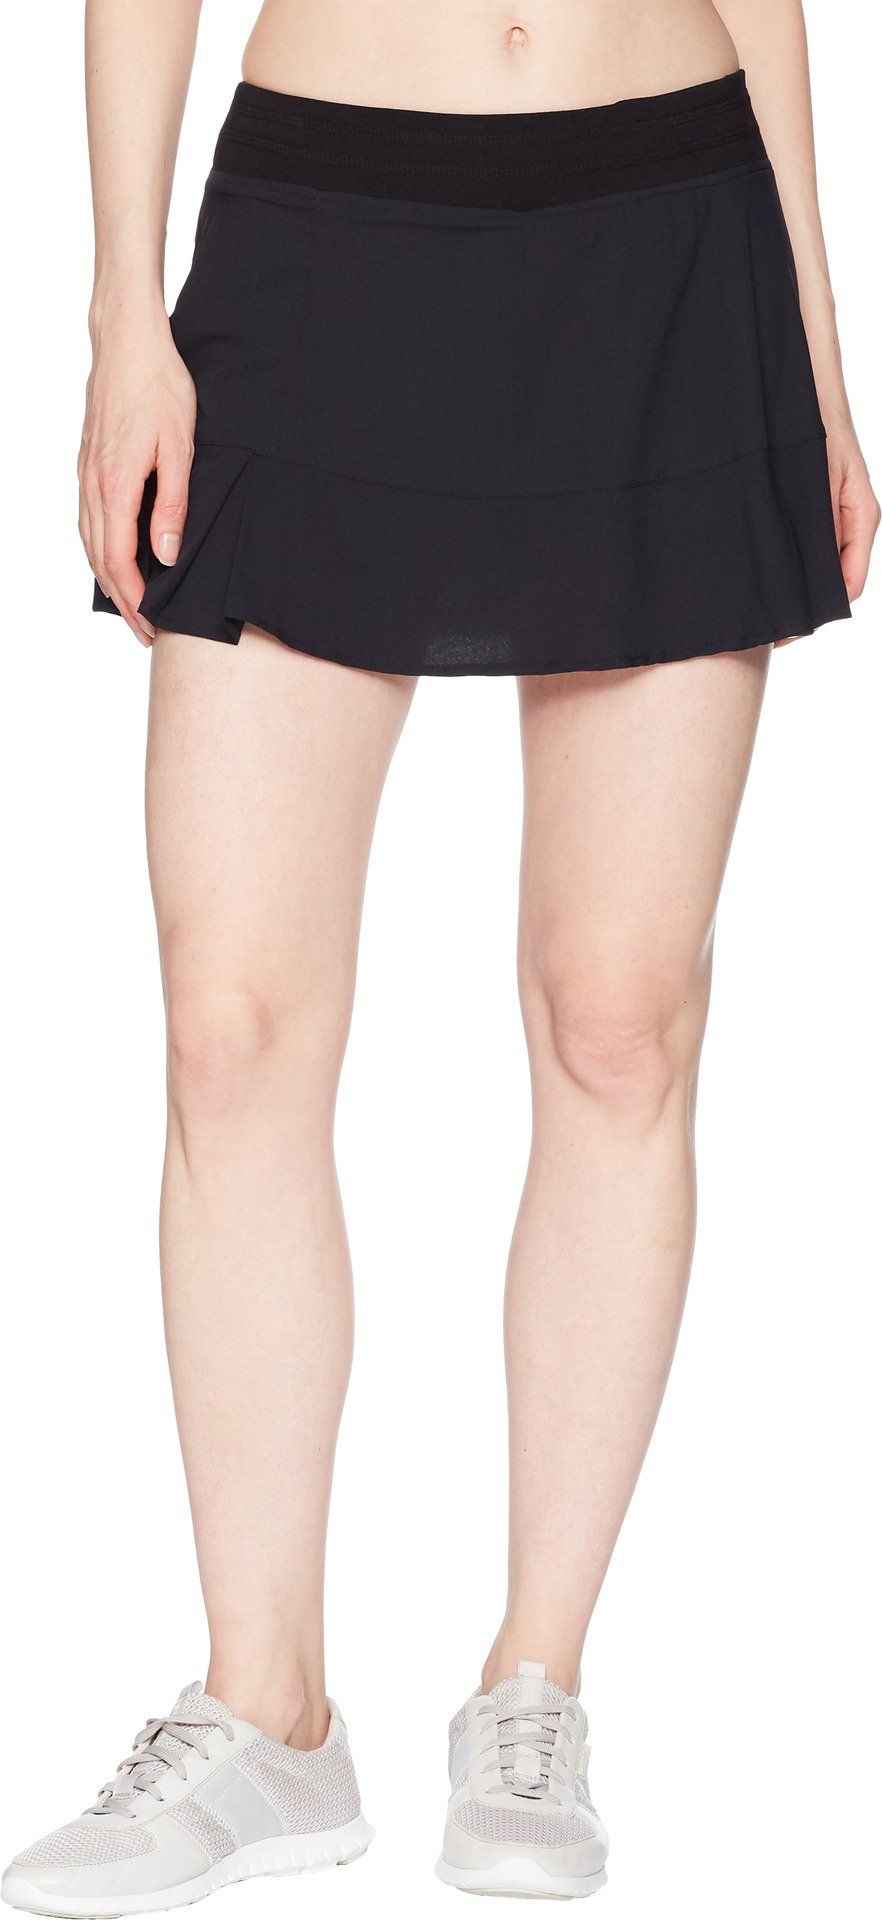 tasc Performance Rhythm Skirt, Black, Small by tasc Performance